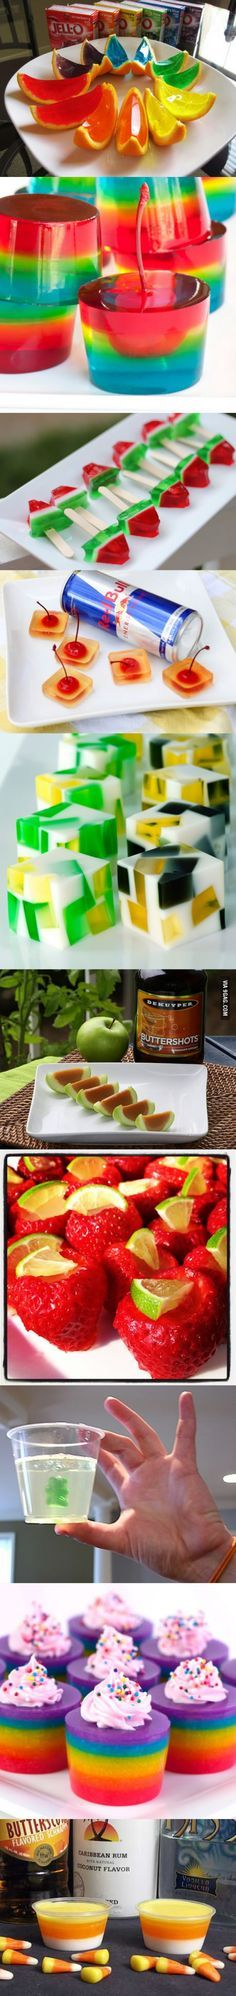 10 different ways to do jello shots, this is amazing.